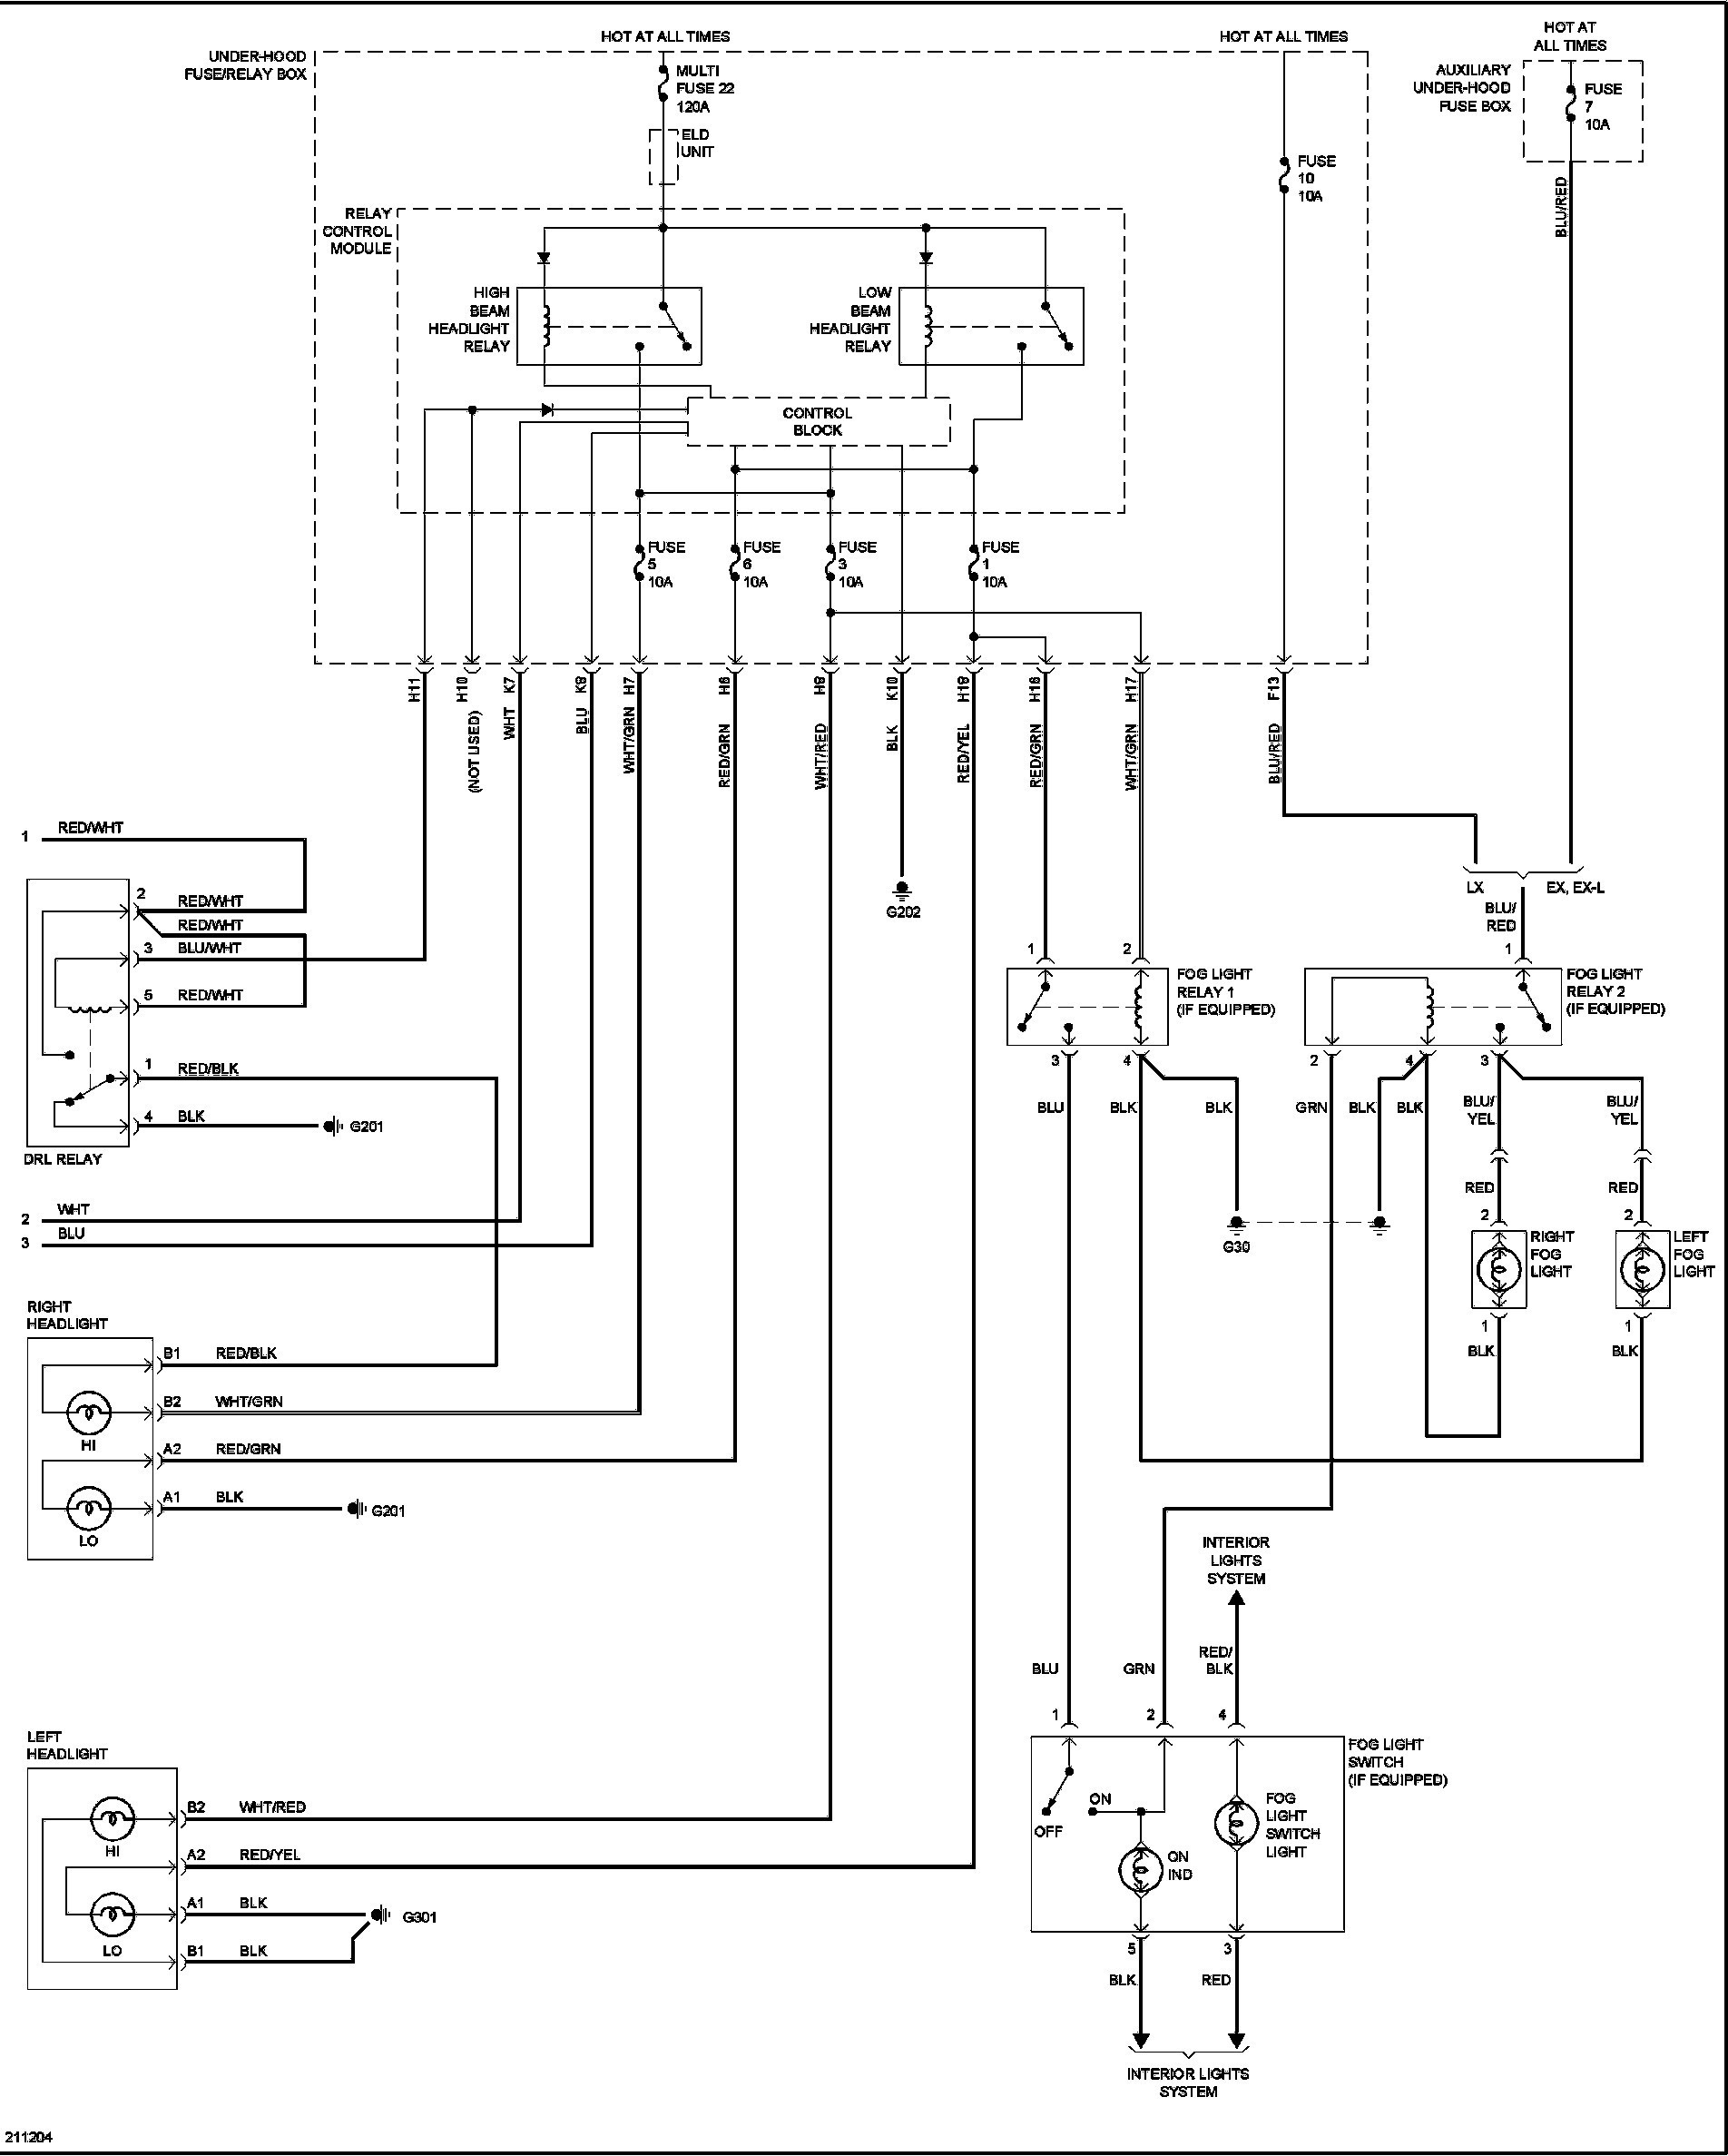 Diagram  1988 Honda Goldwing Wiring Diagram Full Version Hd Quality Wiring Diagram